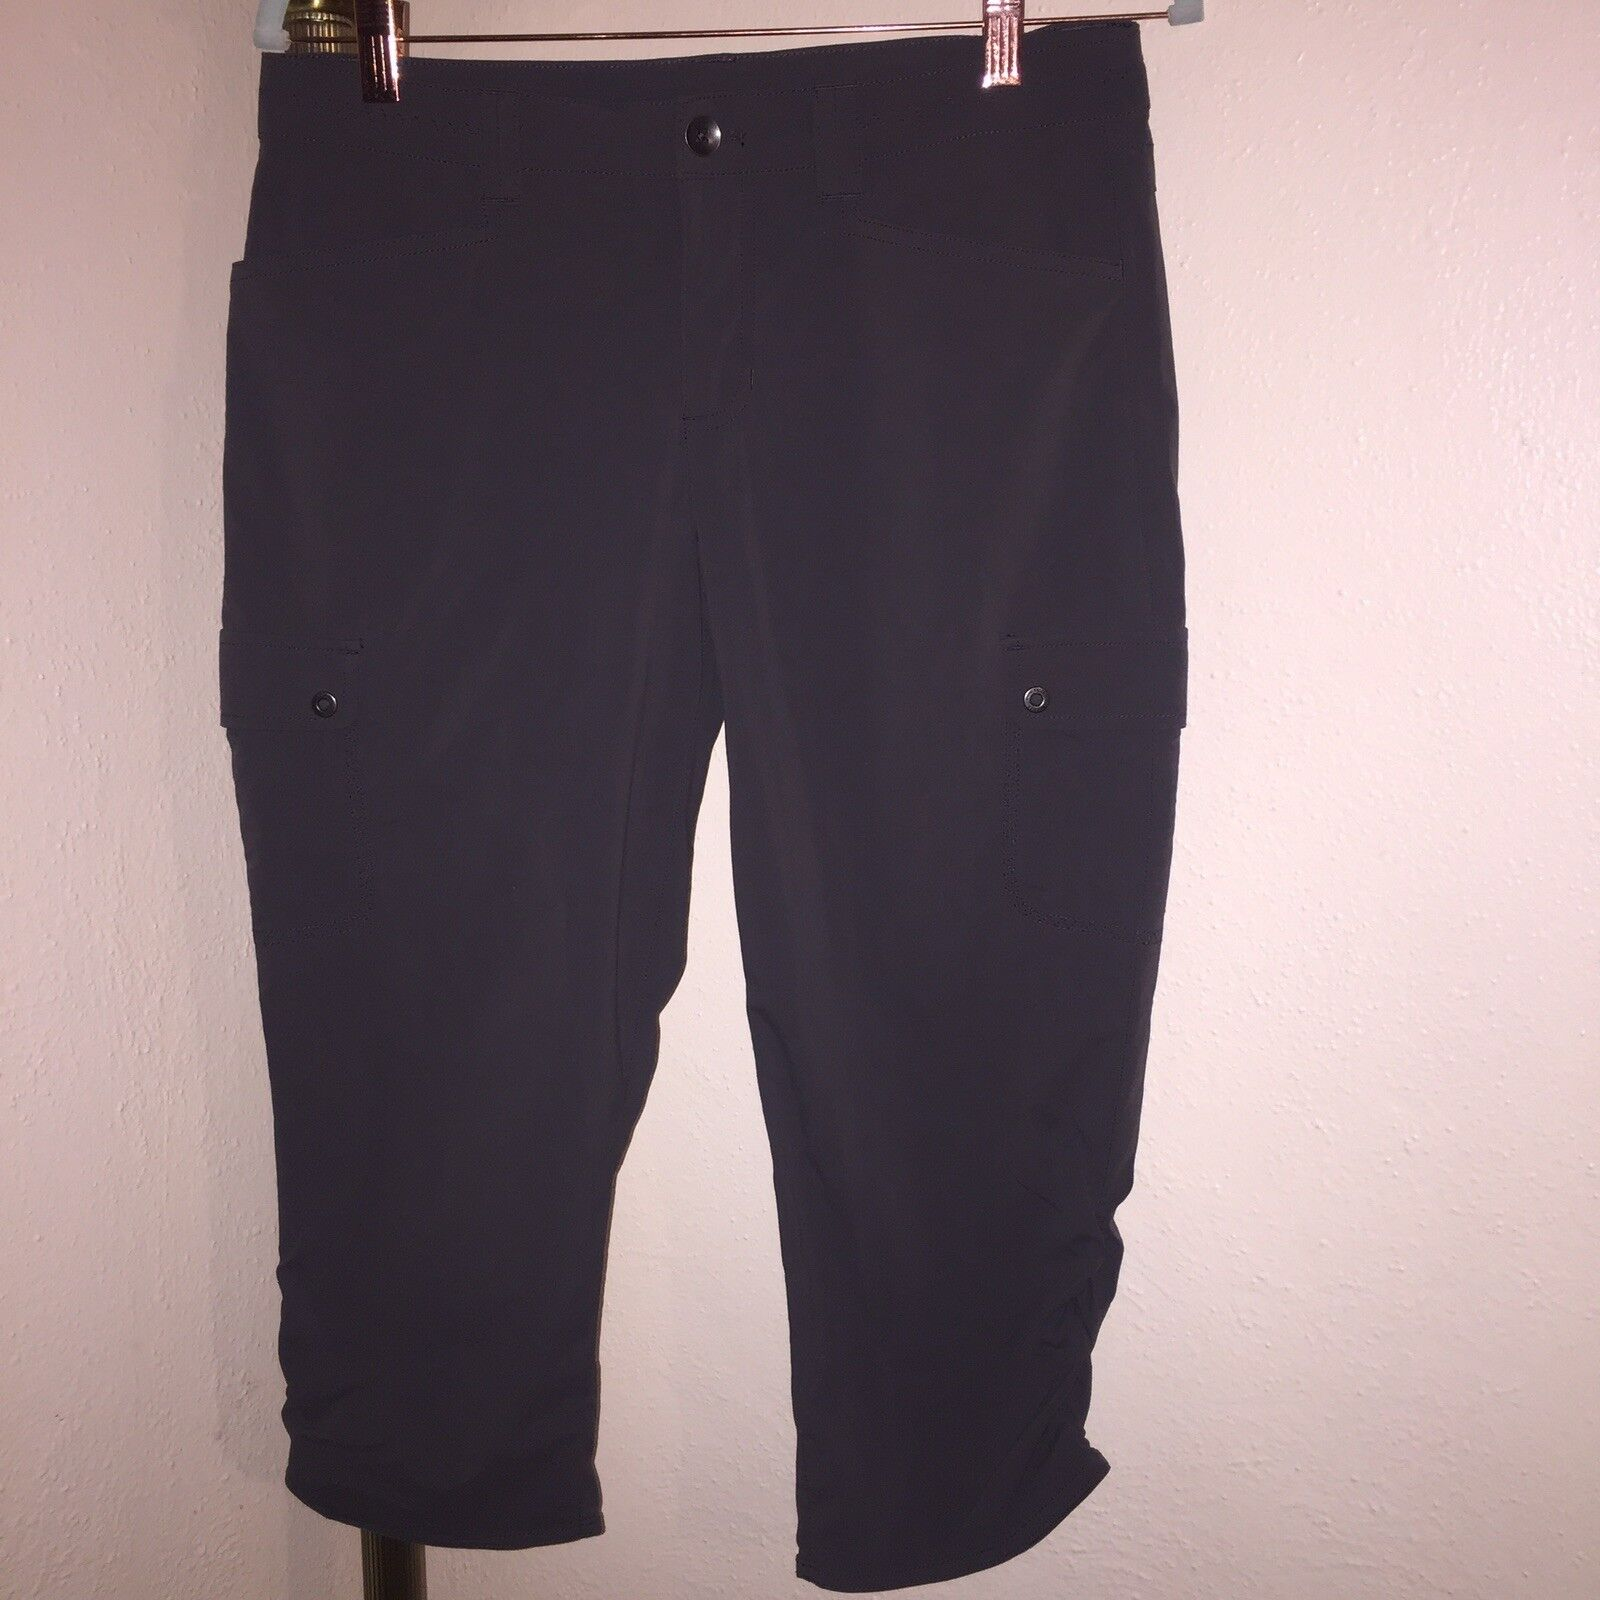 NWOT Women's Eddie Bauer Stretchy Travex  Capris Size 6  is discounted